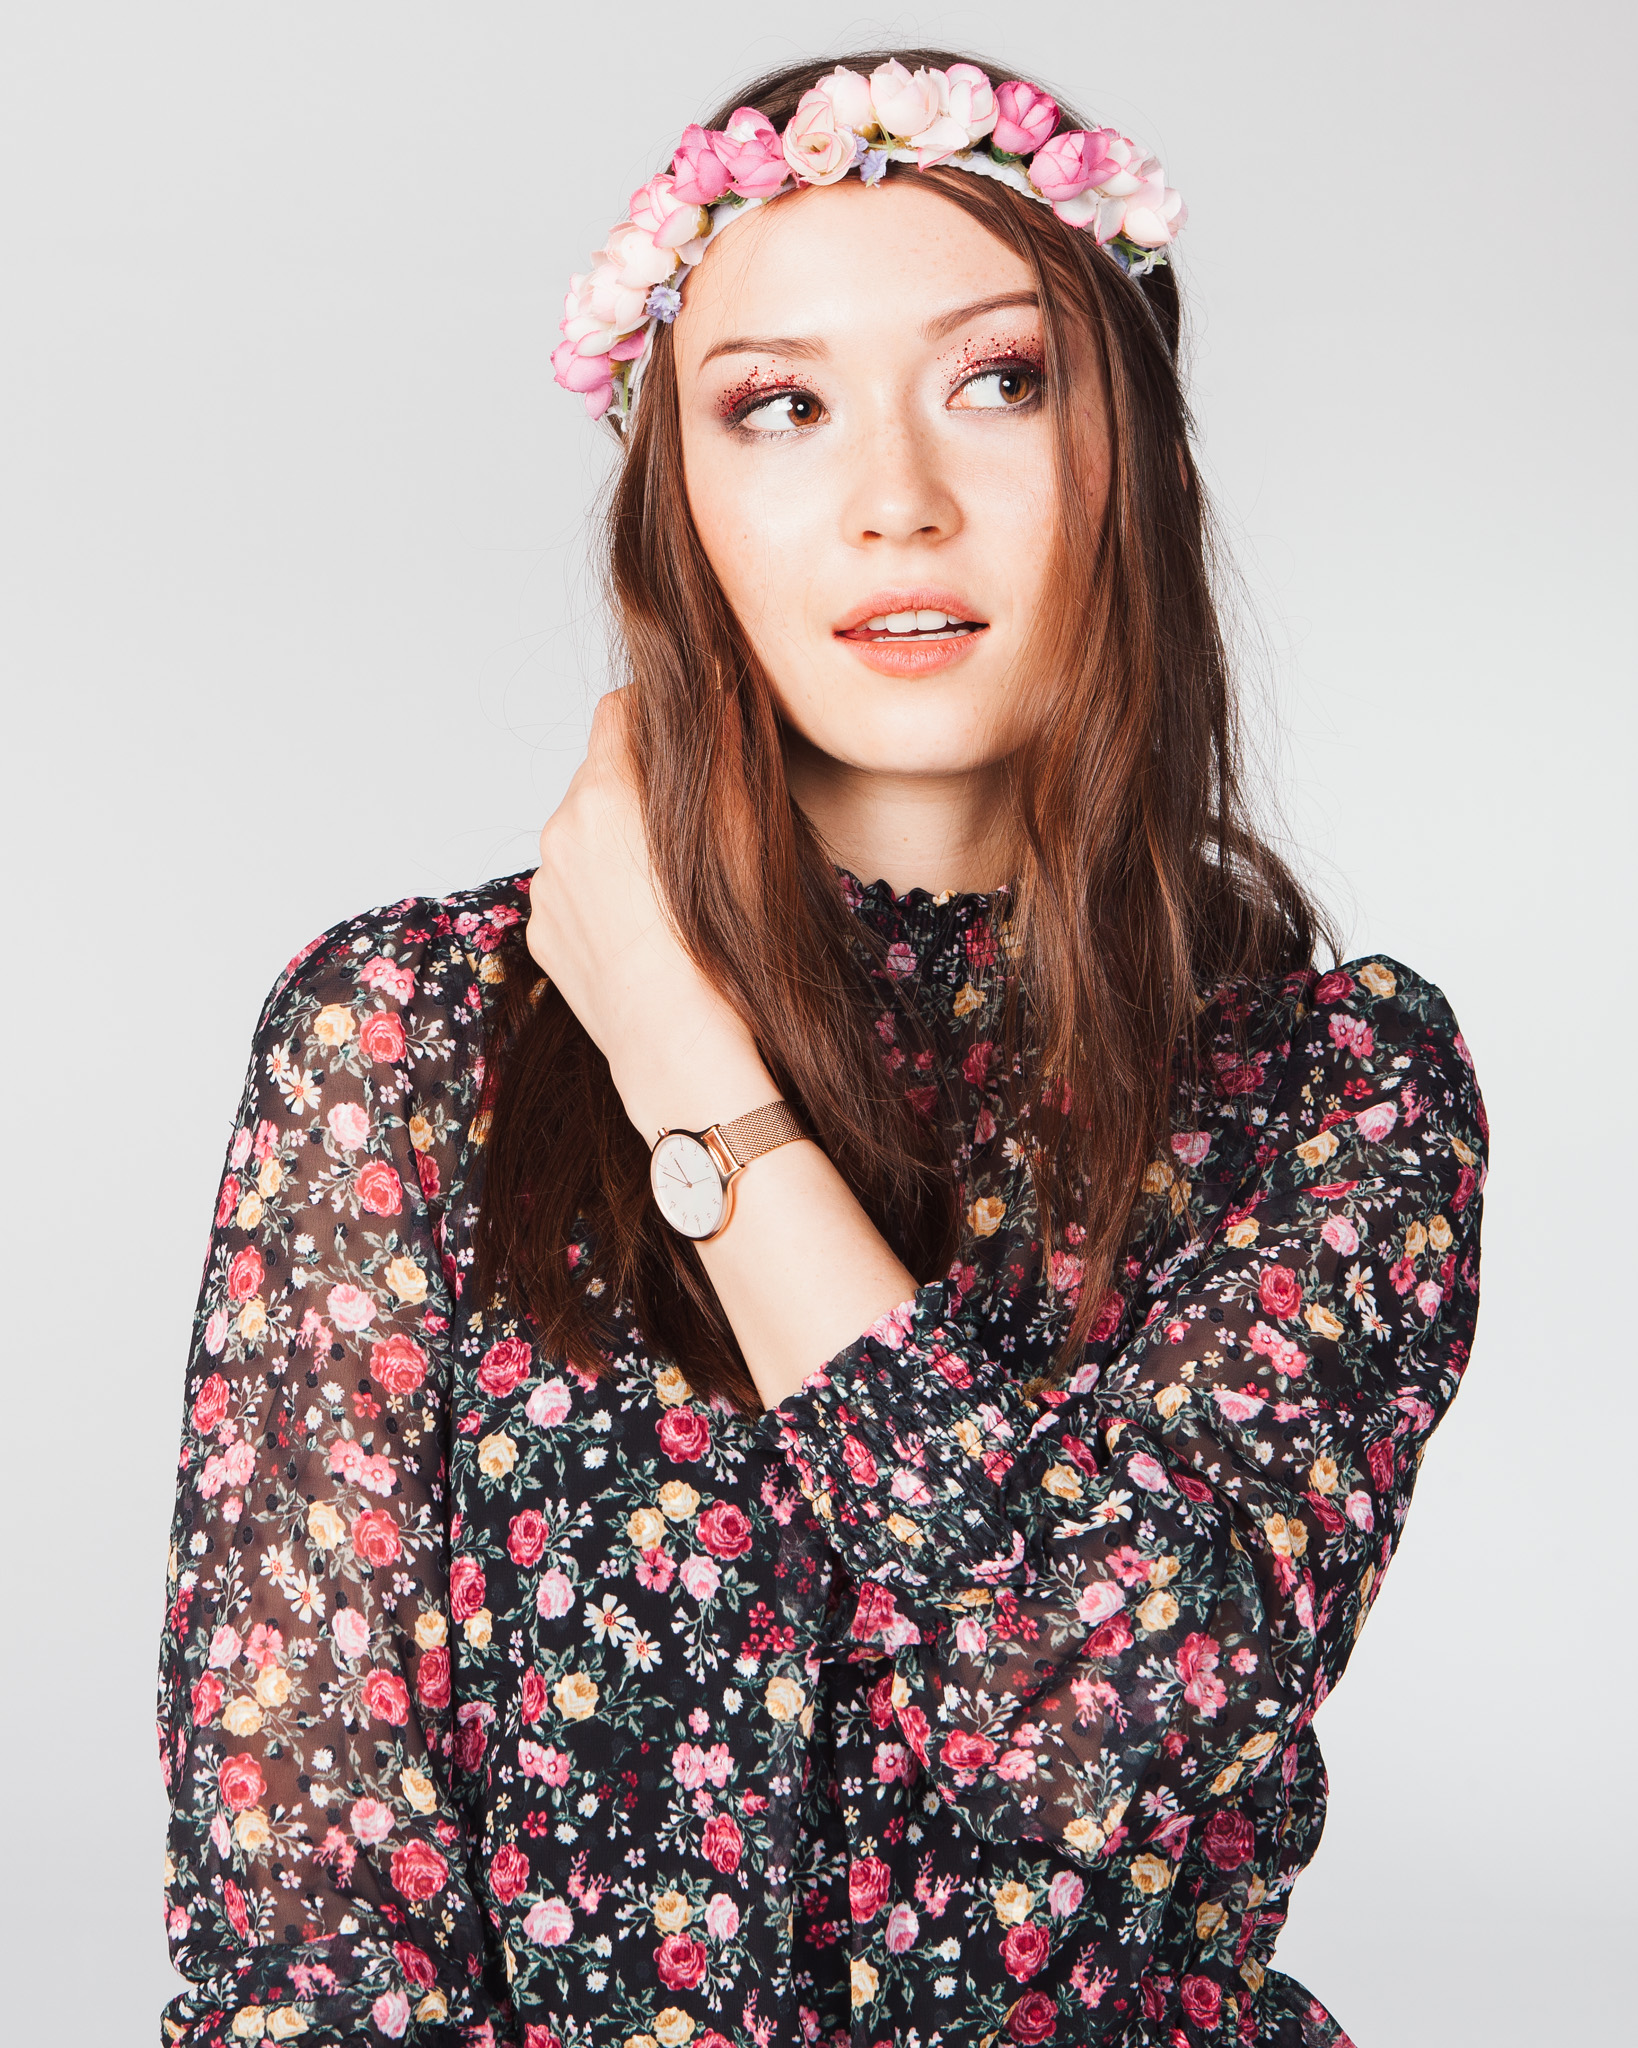 ©TomWoollard_Nintendo_New_Style_Boutique-editorial-fashion-portrait-young-beautiful-woman-flowers-hair.jpg